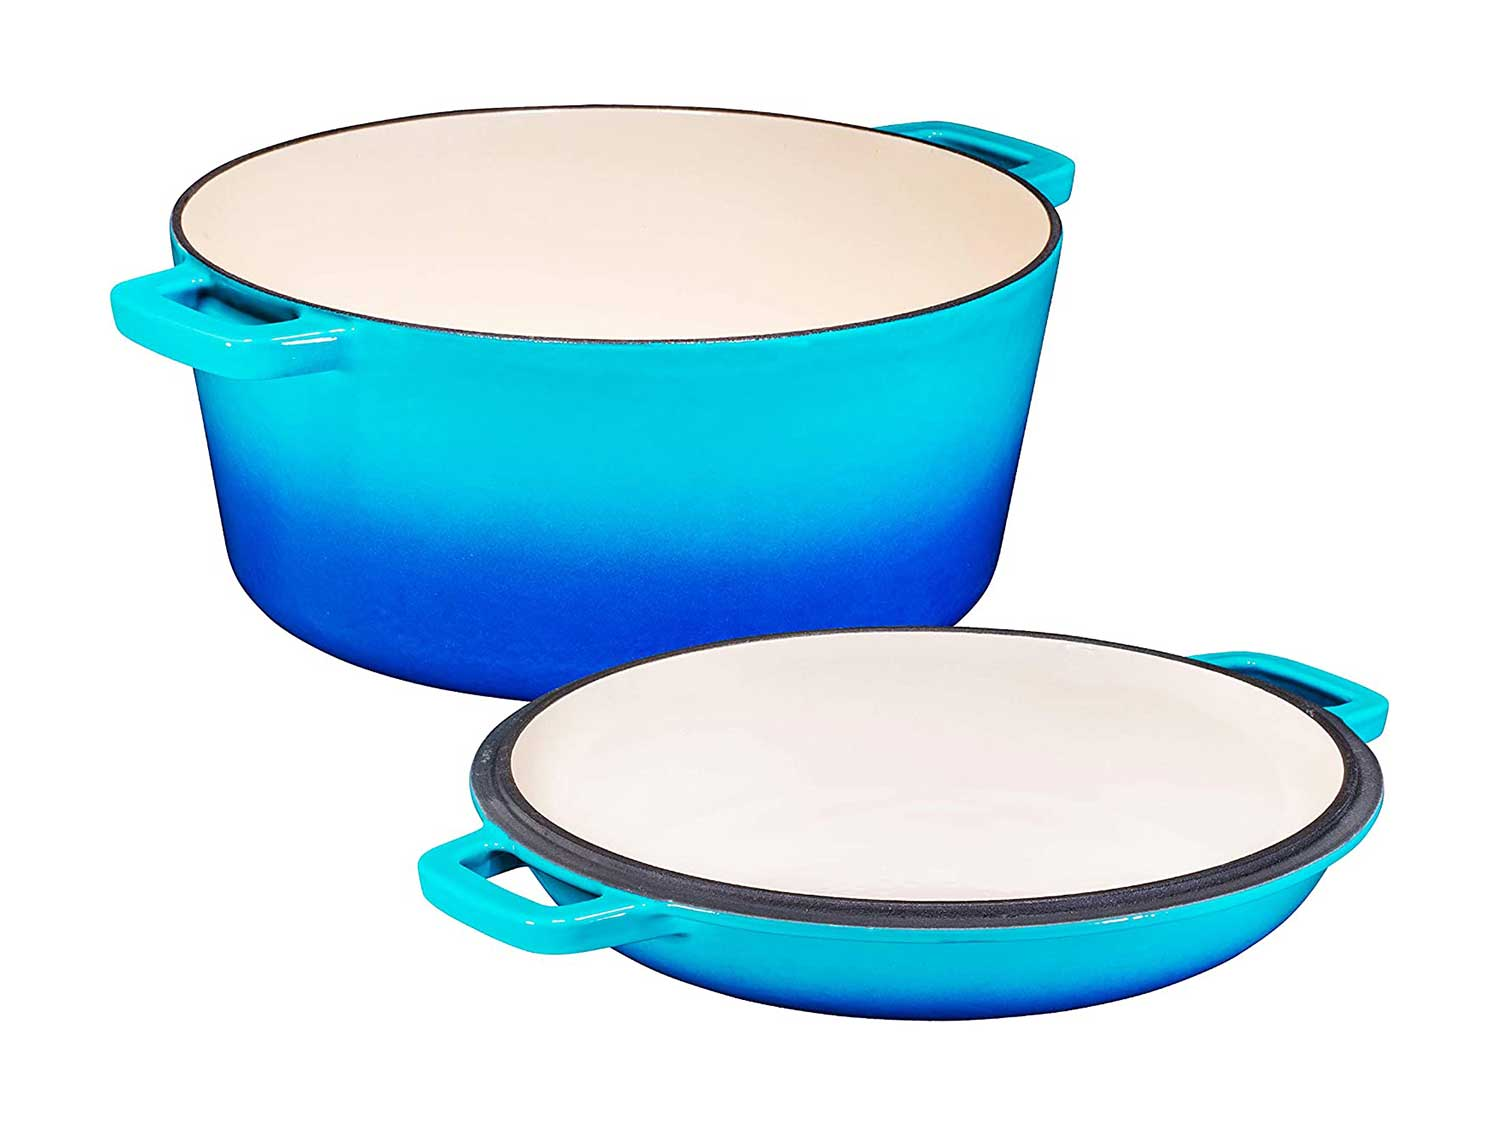 2 in 1 Enameled Cast Iron Double Dutch Oven & Skillet Lid, 5-Quart, Induction, Electric, Gas & In Oven Compatible, Caribbean